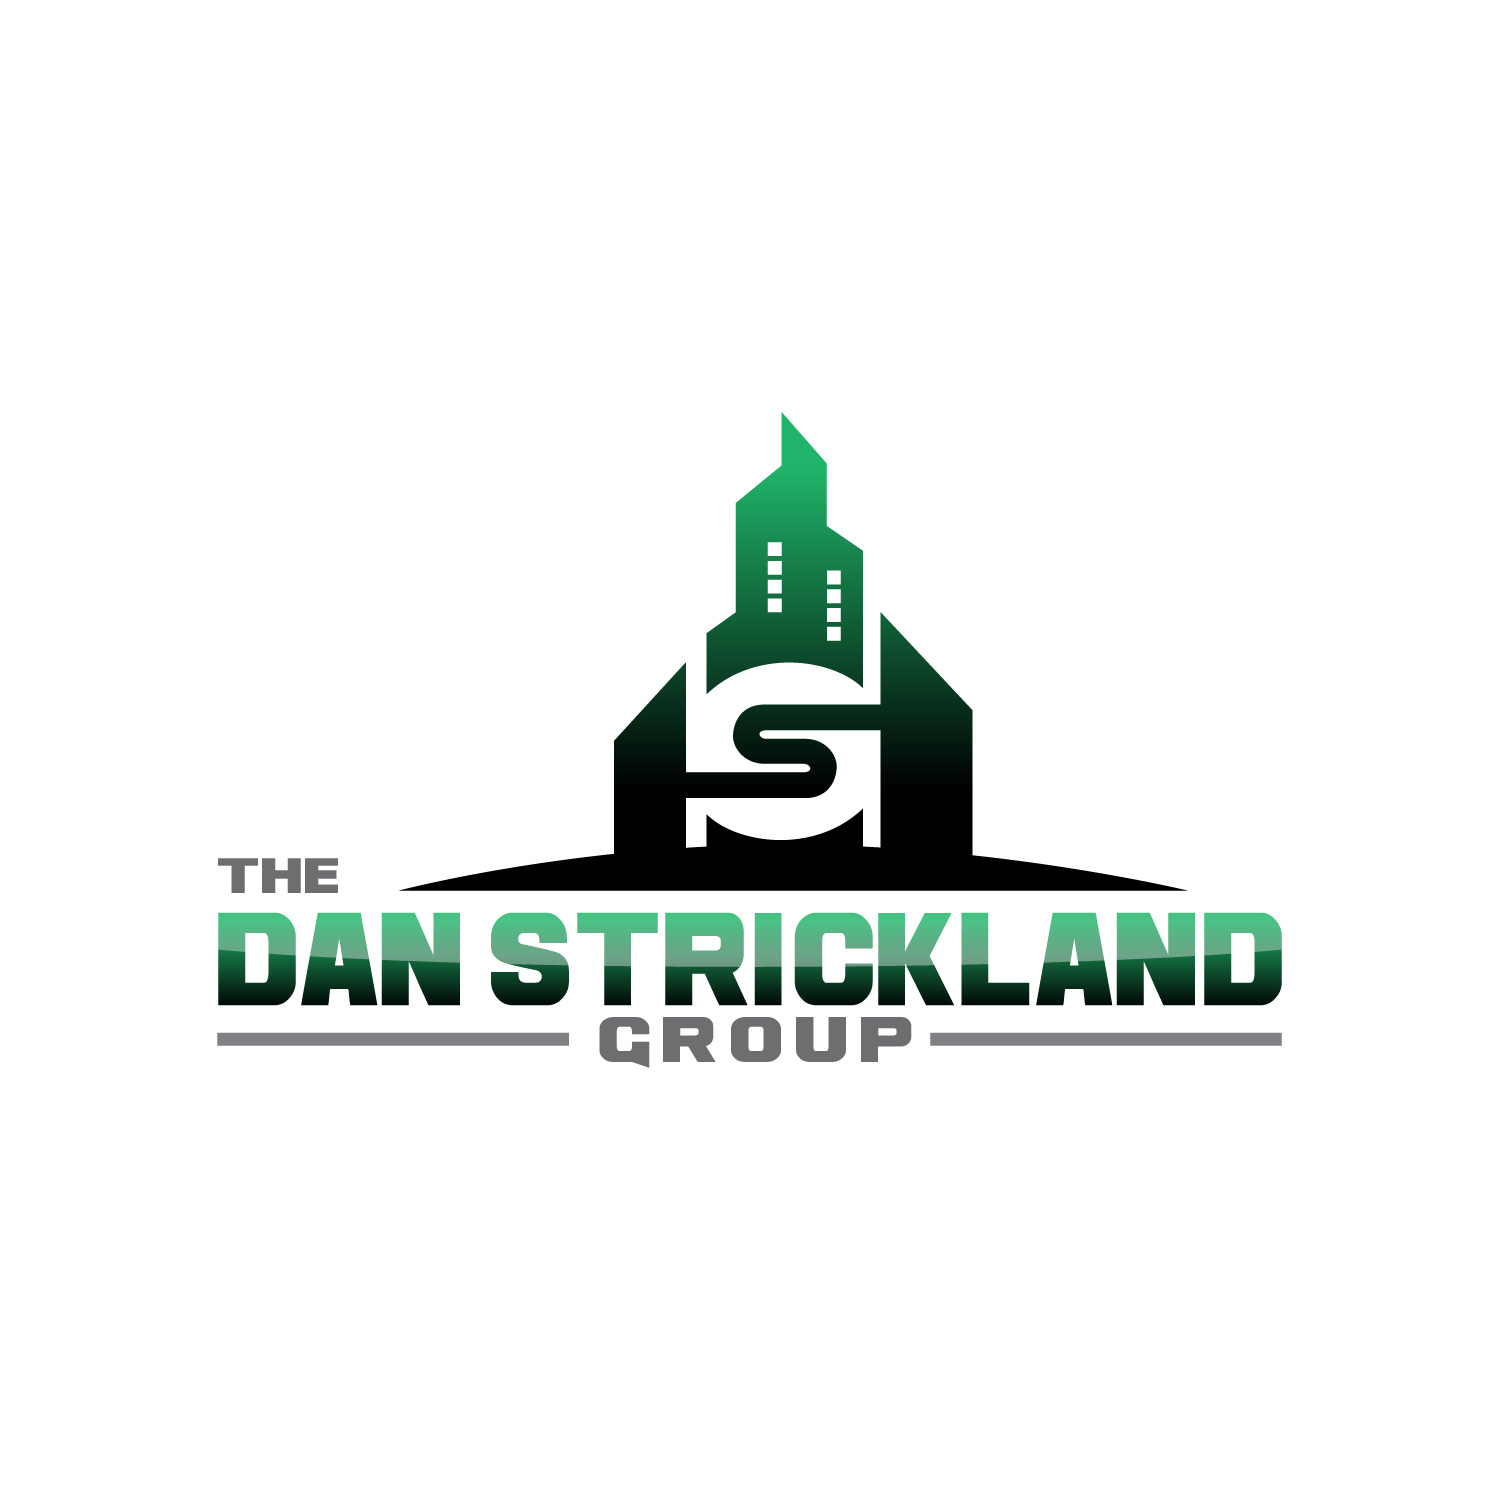 Logo Design by lagalag - Entry No. 213 in the Logo Design Contest Creative Logo Design for The Dan Strickland Group.